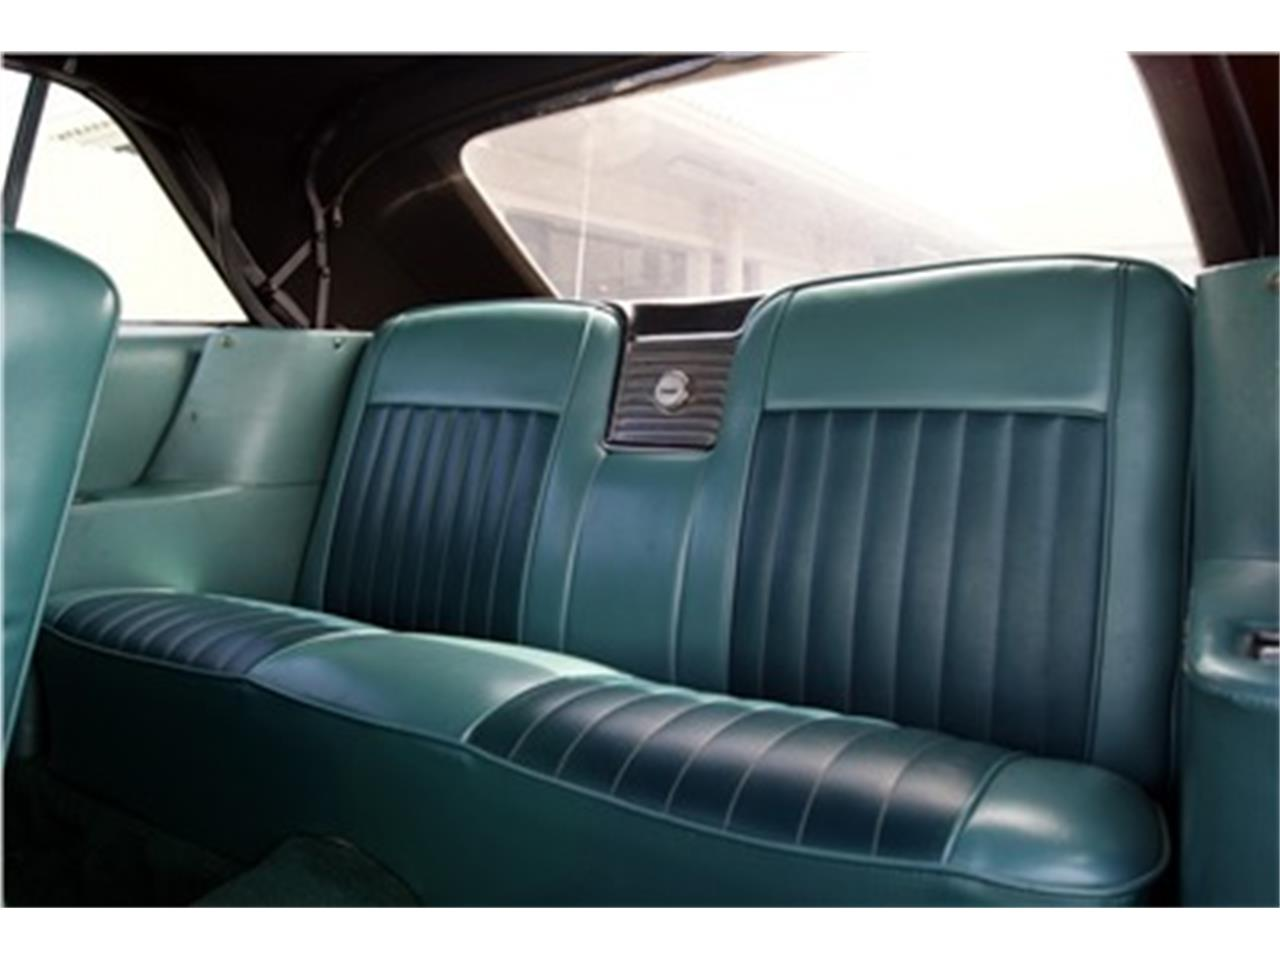 Large Picture of 1965 Ford Galaxie located in Florida - $26,500.00 - FQQU